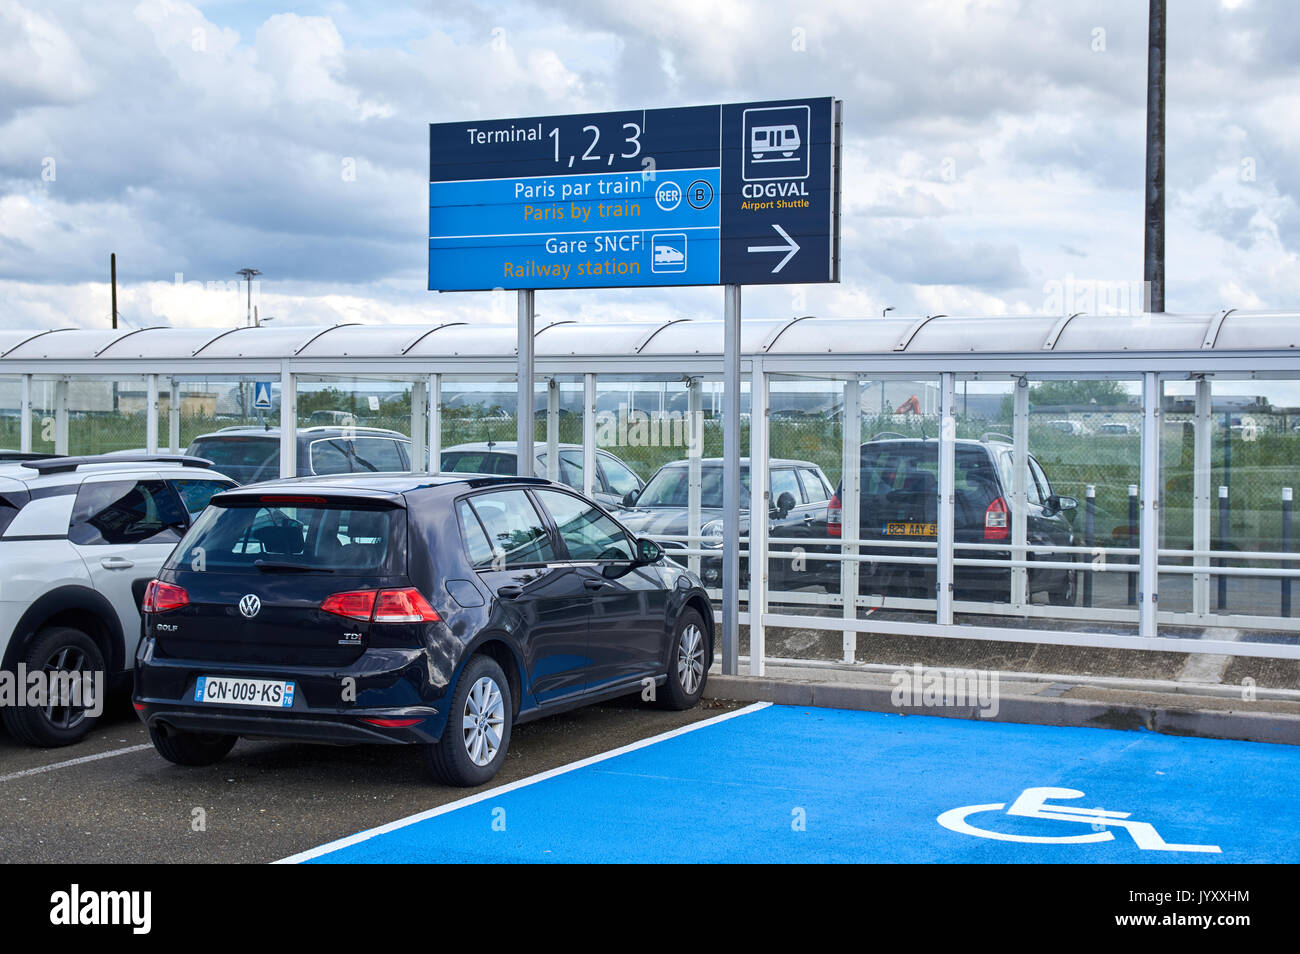 Airport parking stock photos airport parking stock images alamy paris france may 14 2017 charles de gaulle airport parking and direction kristyandbryce Image collections